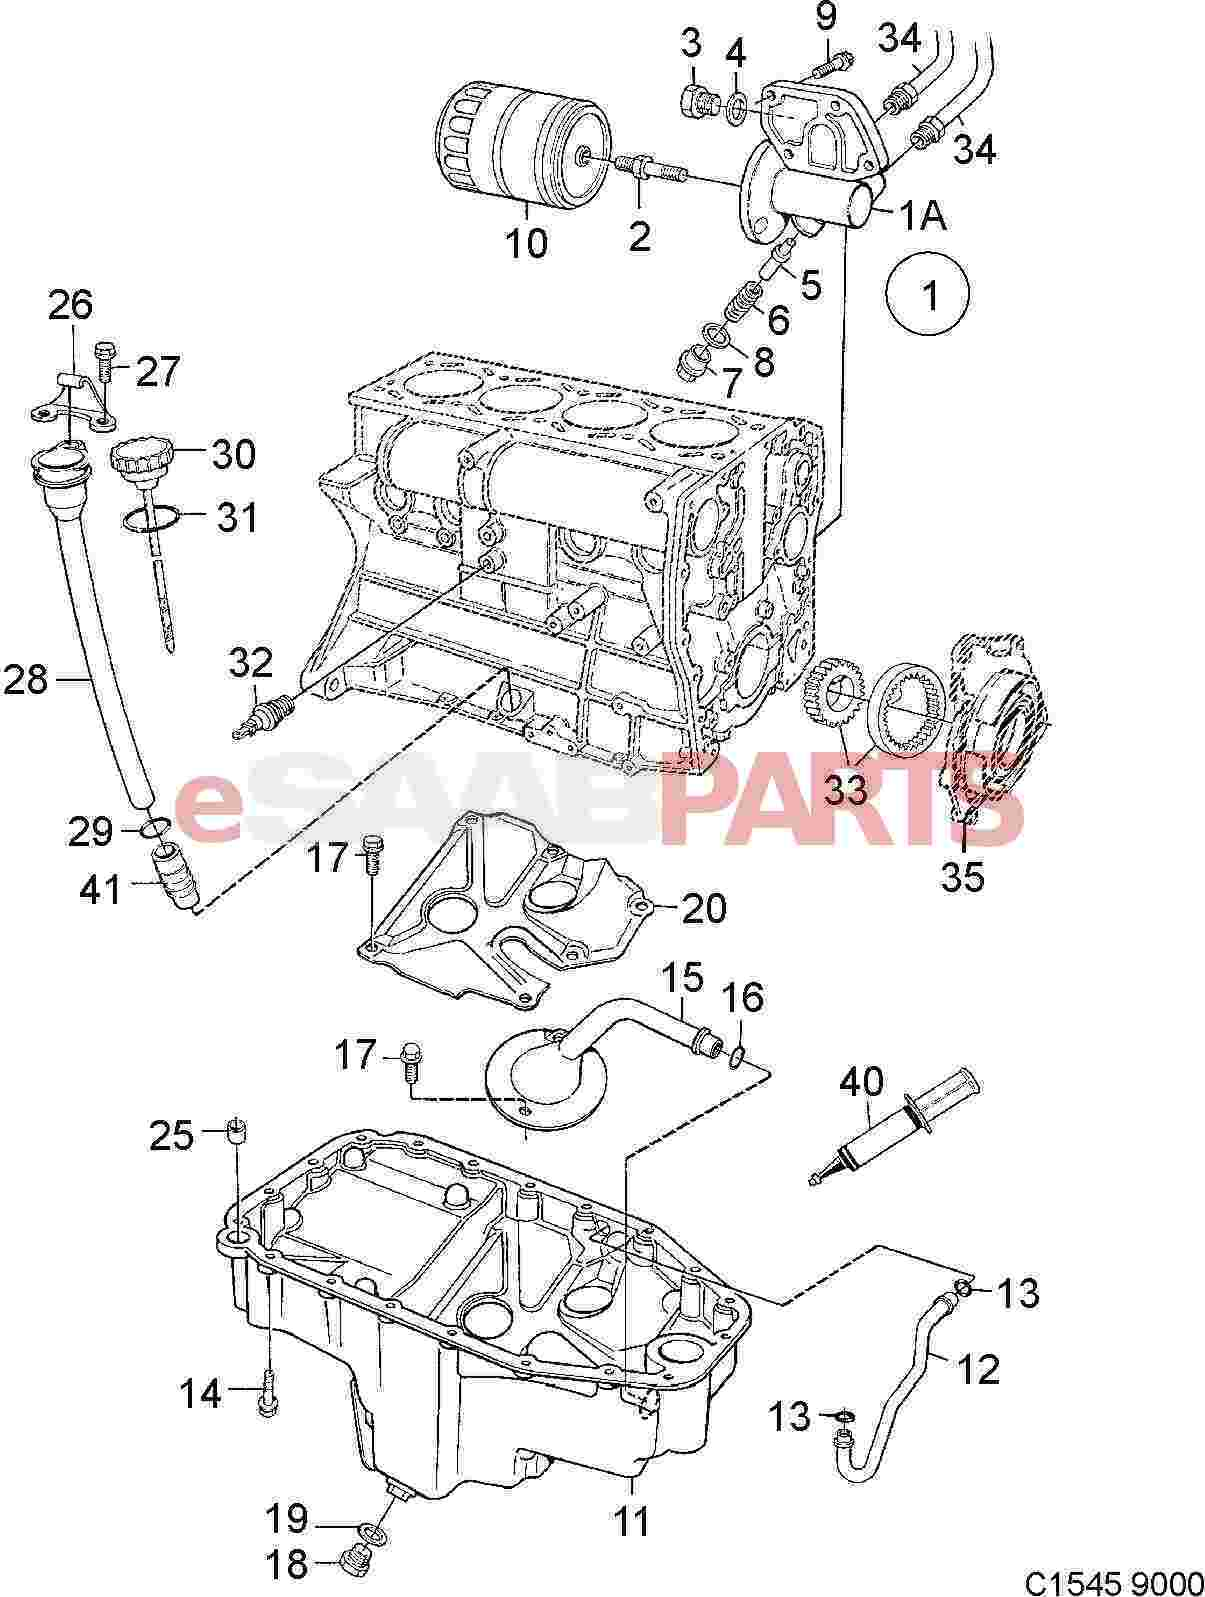 saab 9 3 linear engine diagram  u2022 wiring diagram for free